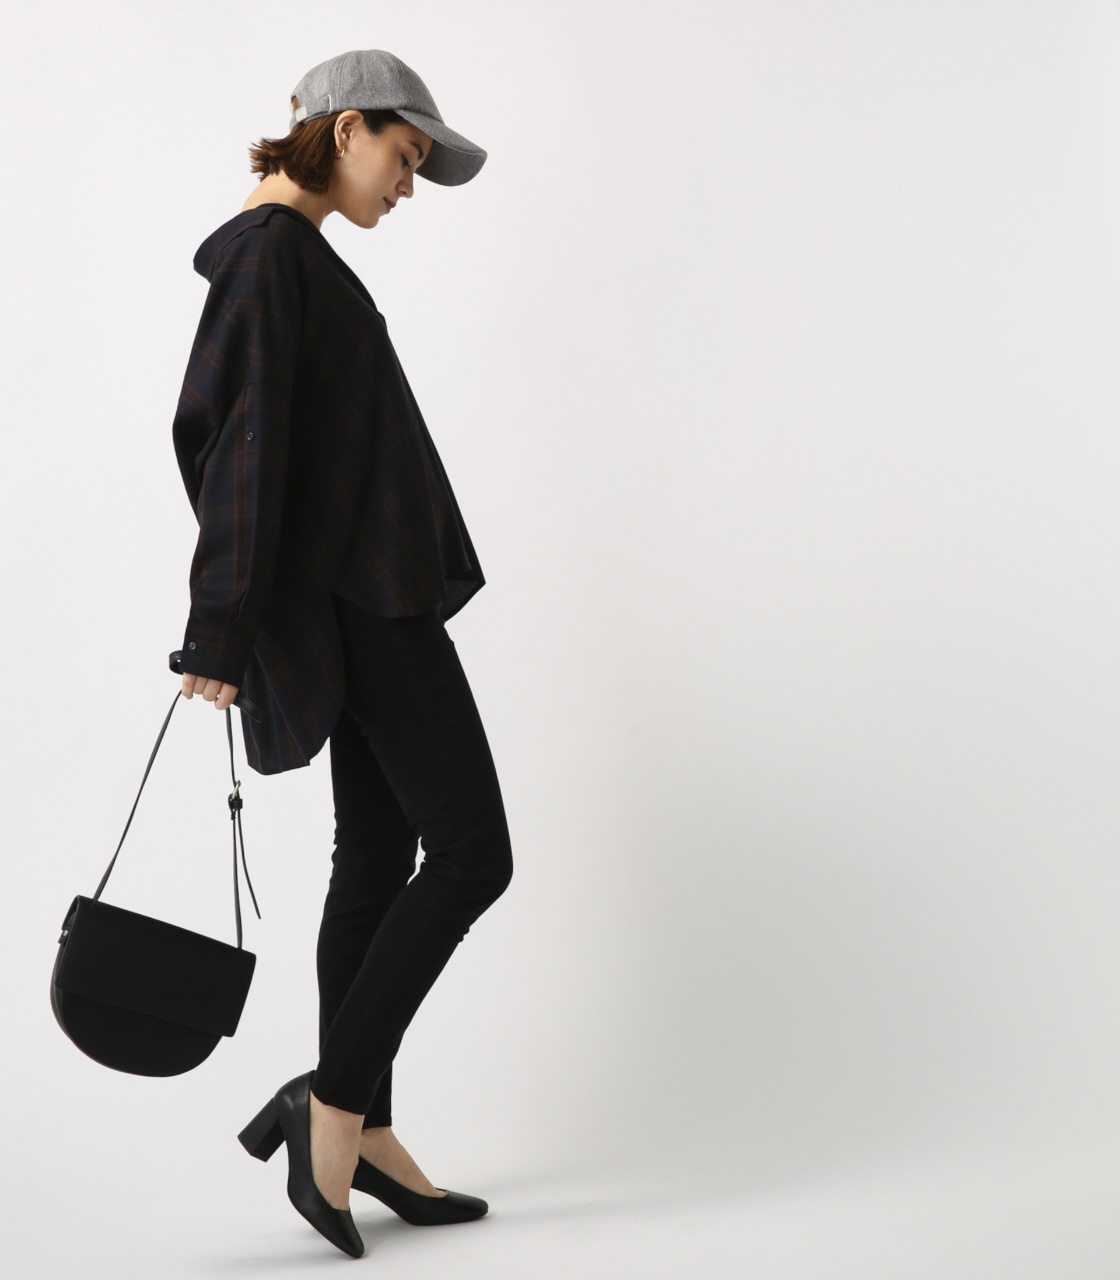 【AZUL BY MOUSSY】ROYOスキニーパンツ 詳細画像 BLK 4